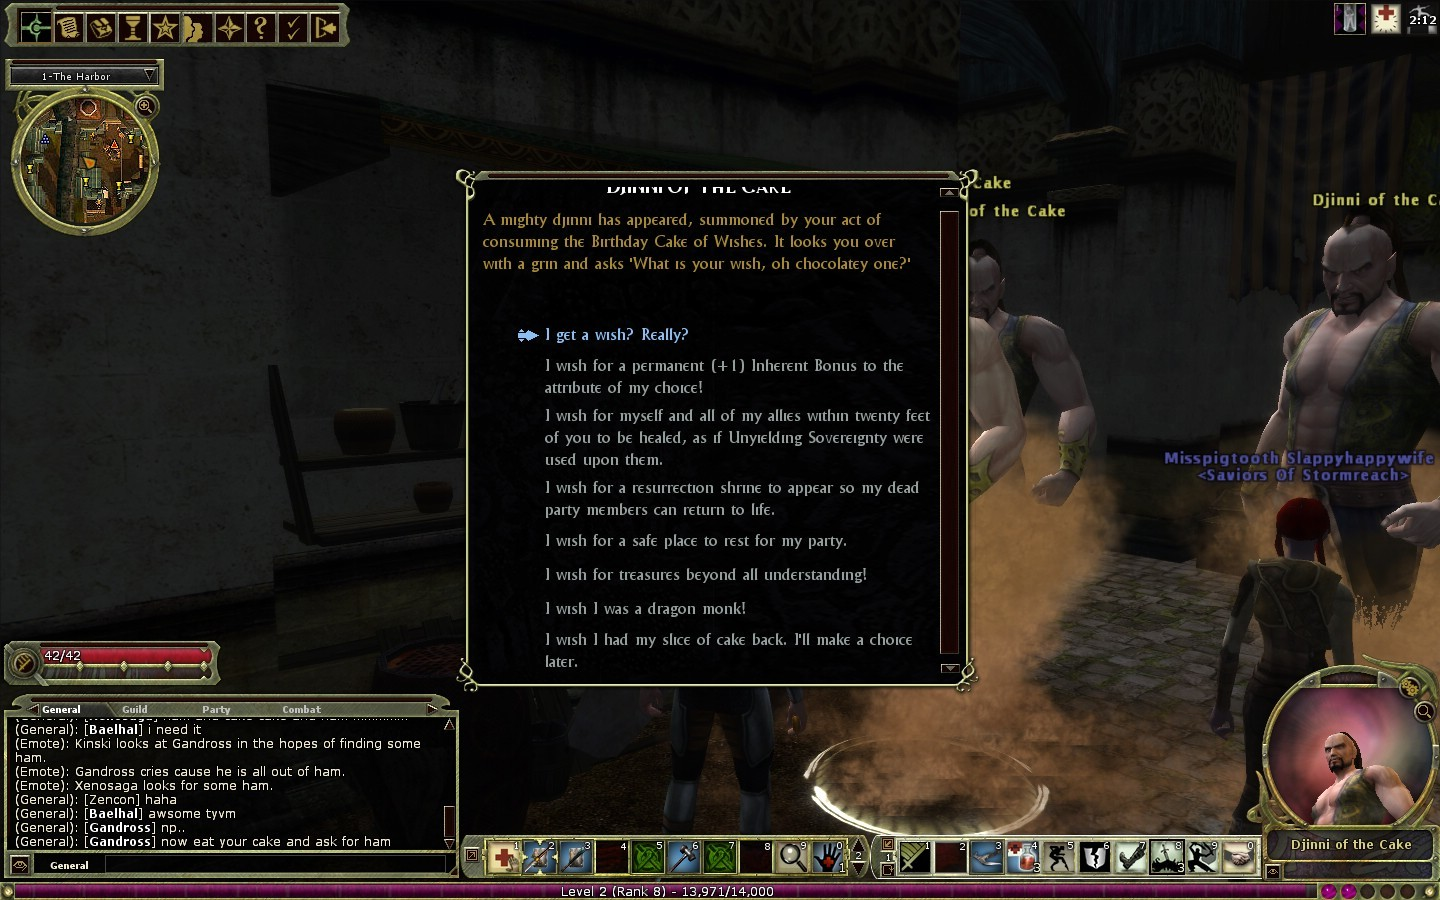 Dungeons & Dragons Online - DDO 6.1 Djinni Chat Box